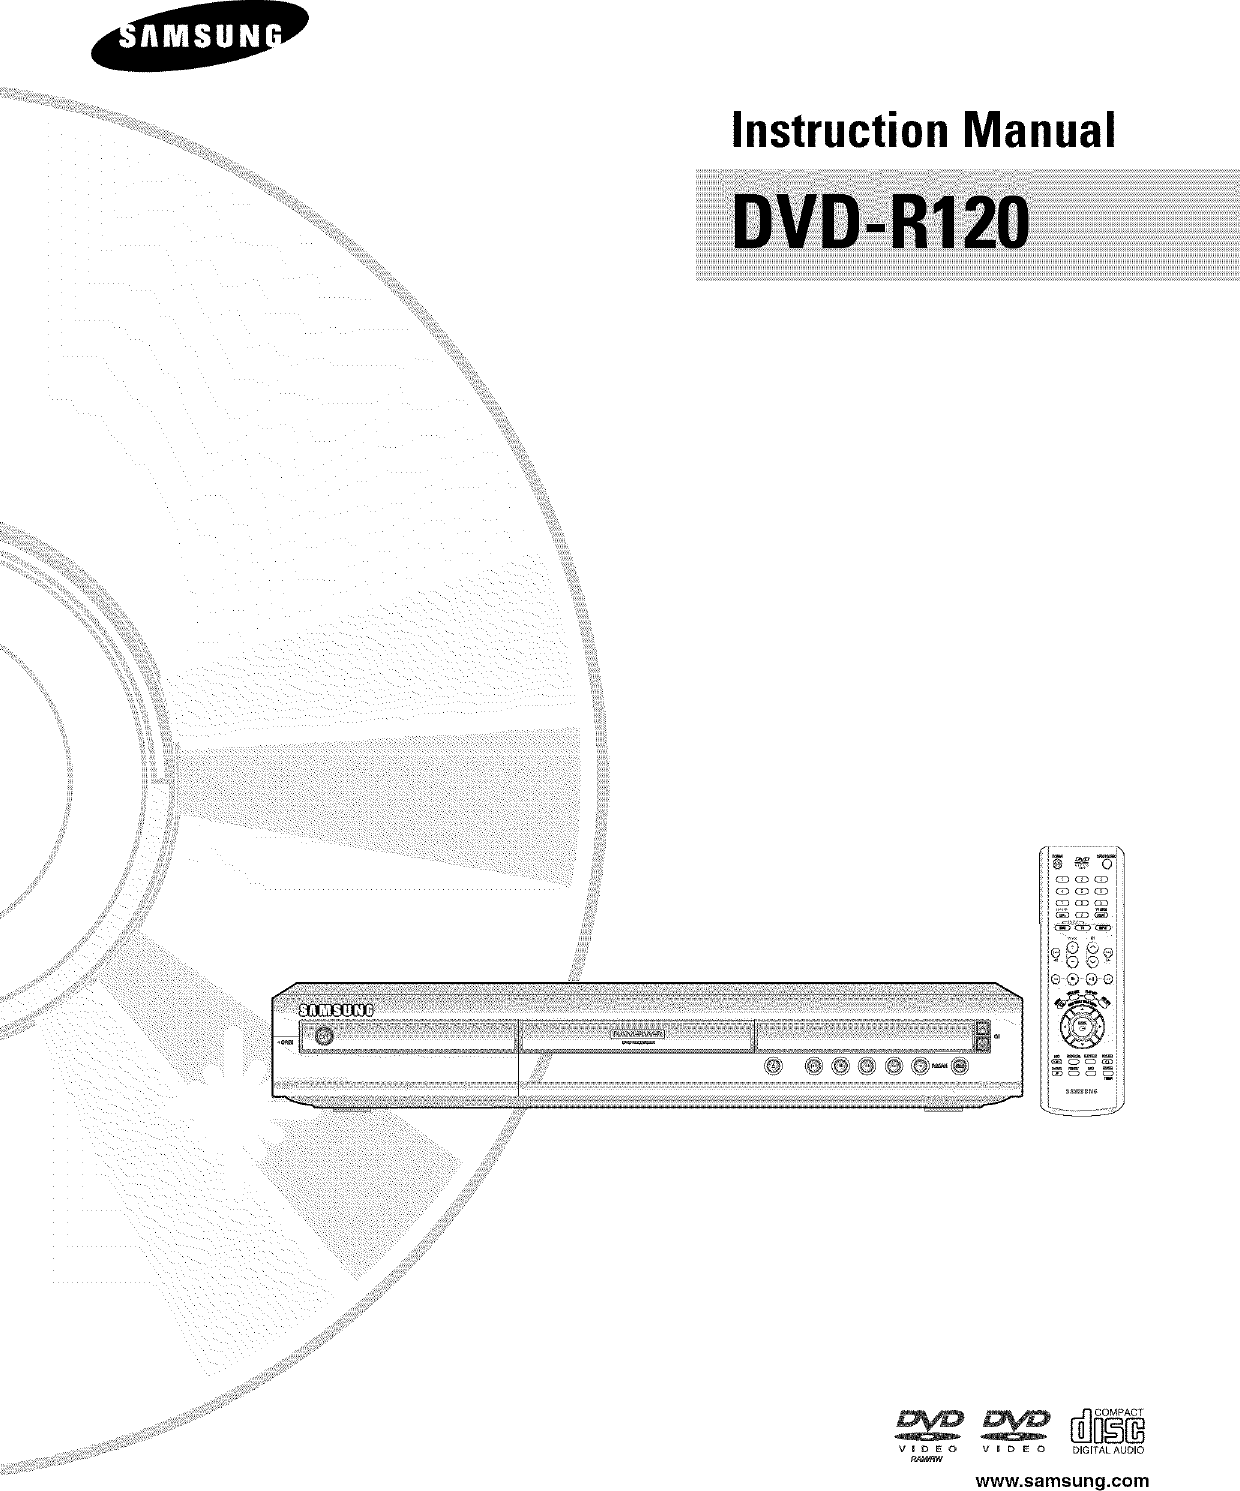 Page 9 of samsung dvd recorder dvd-r120 user guide | manualsonline. Com.